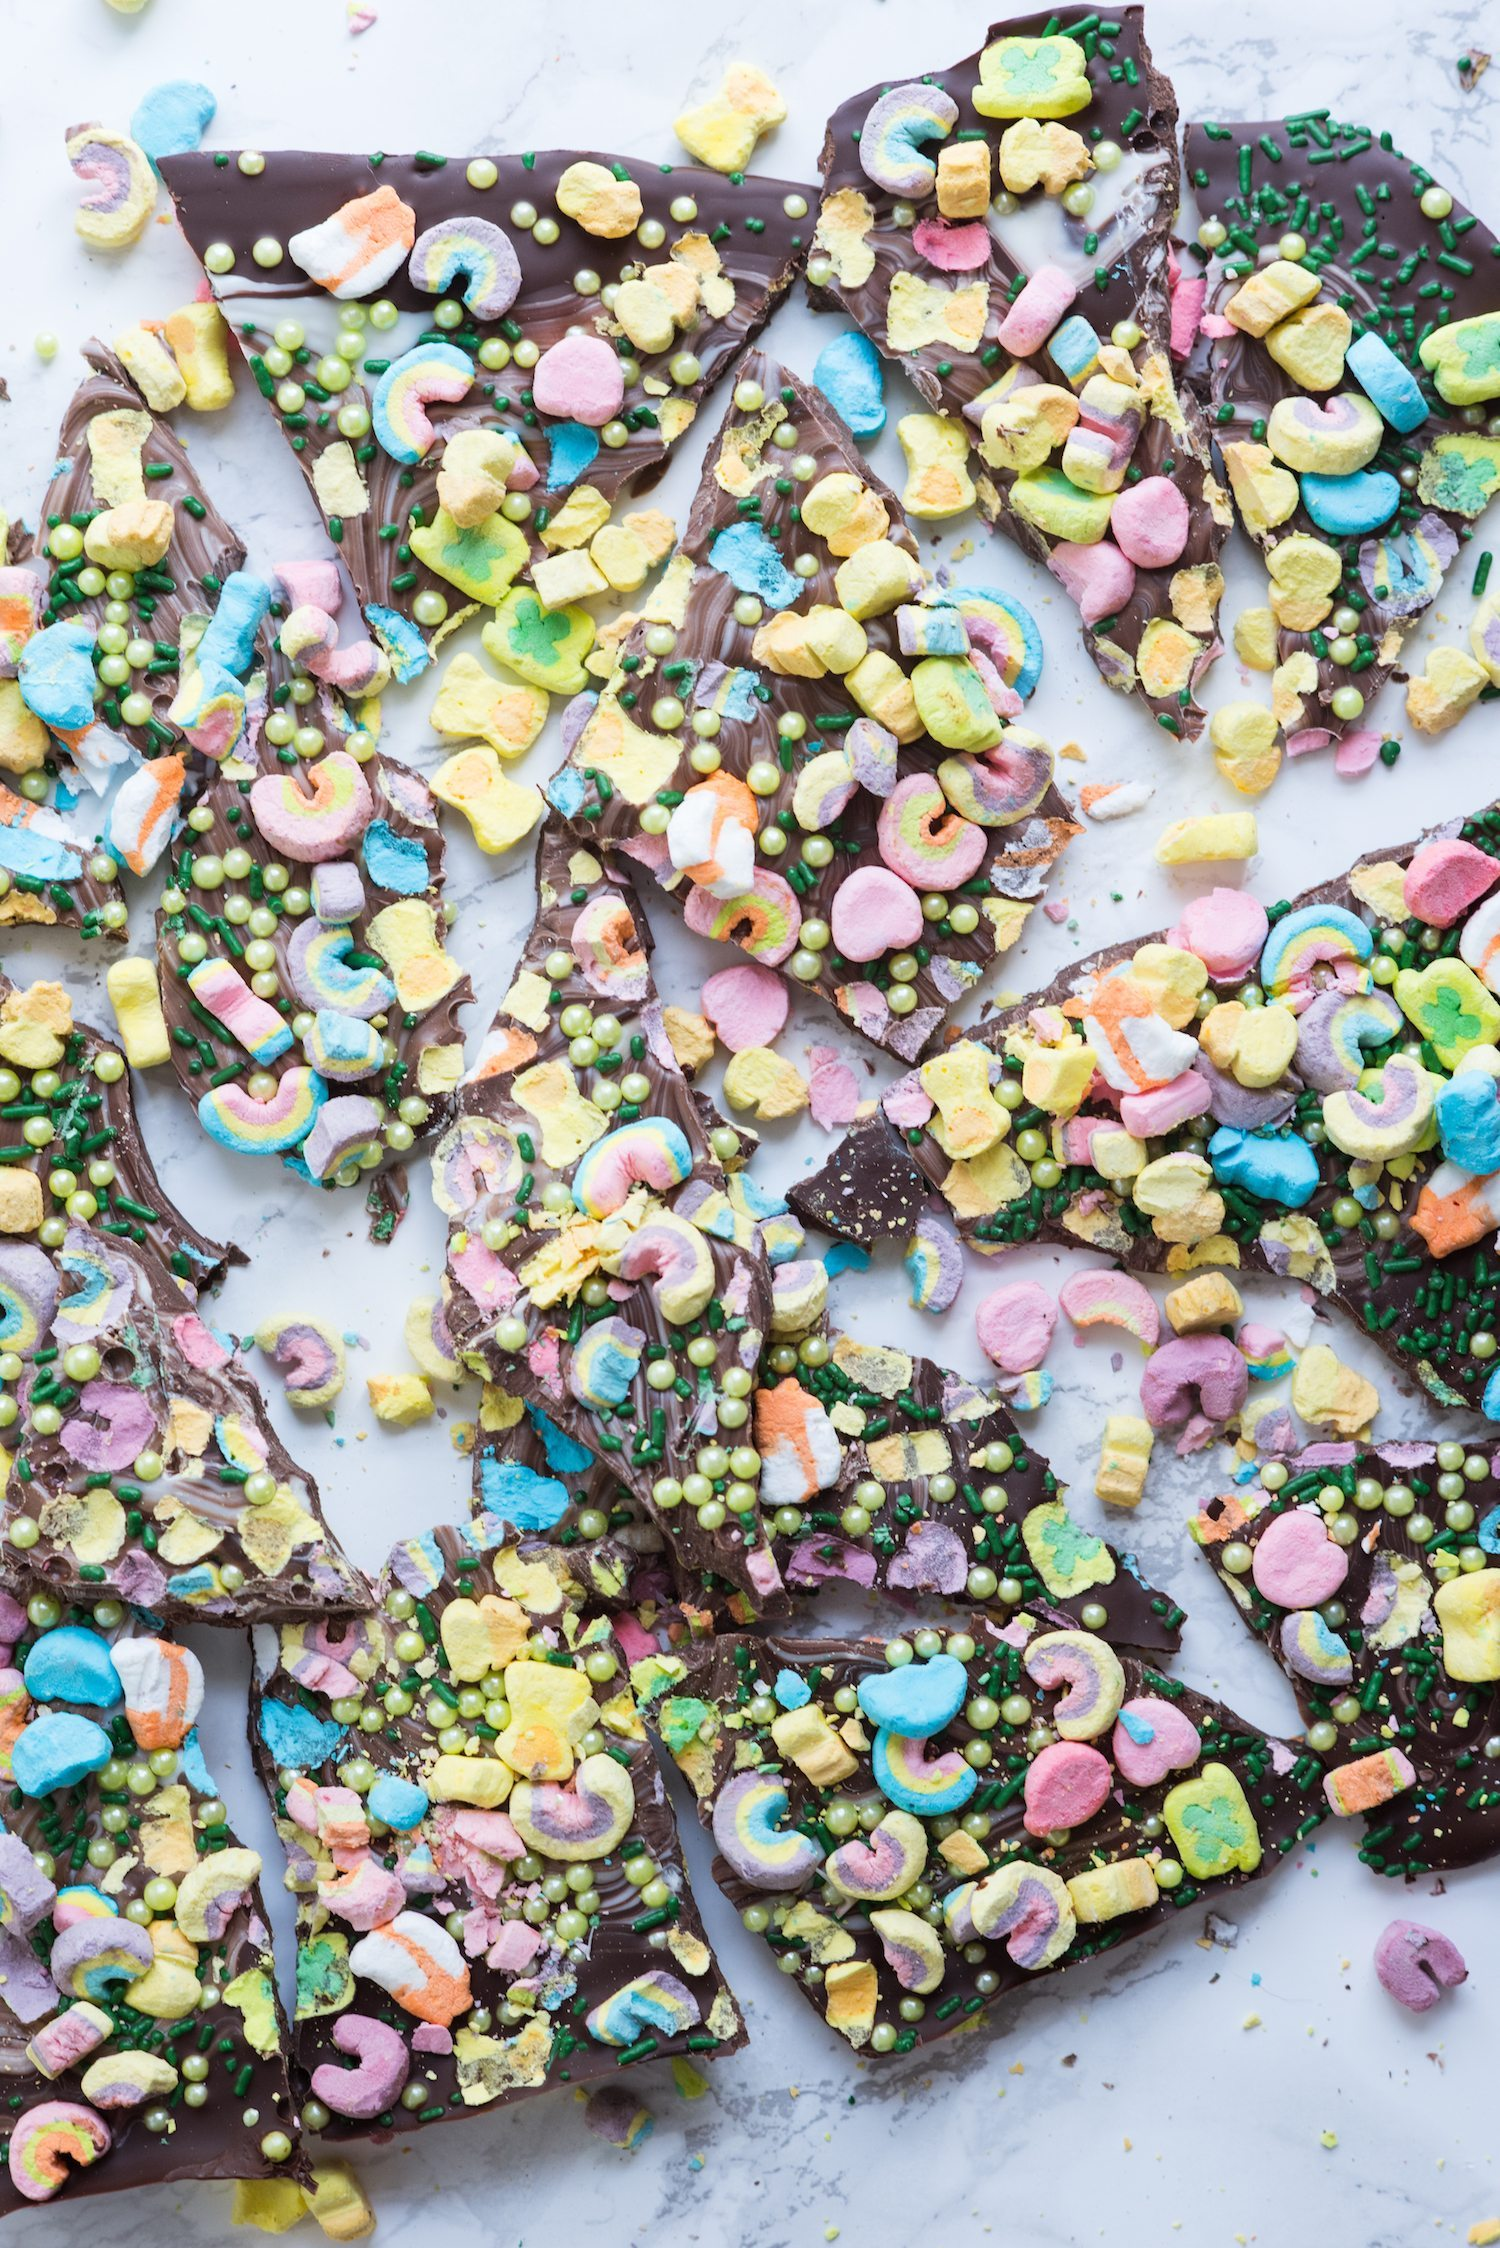 Loaded Lucky Charms St. Patrick's Day Bark | St. Patrick's Day recipes, fun St. Patrick's Day ideas for kids, entertaining ideas, party recipes and more from @cydconverse